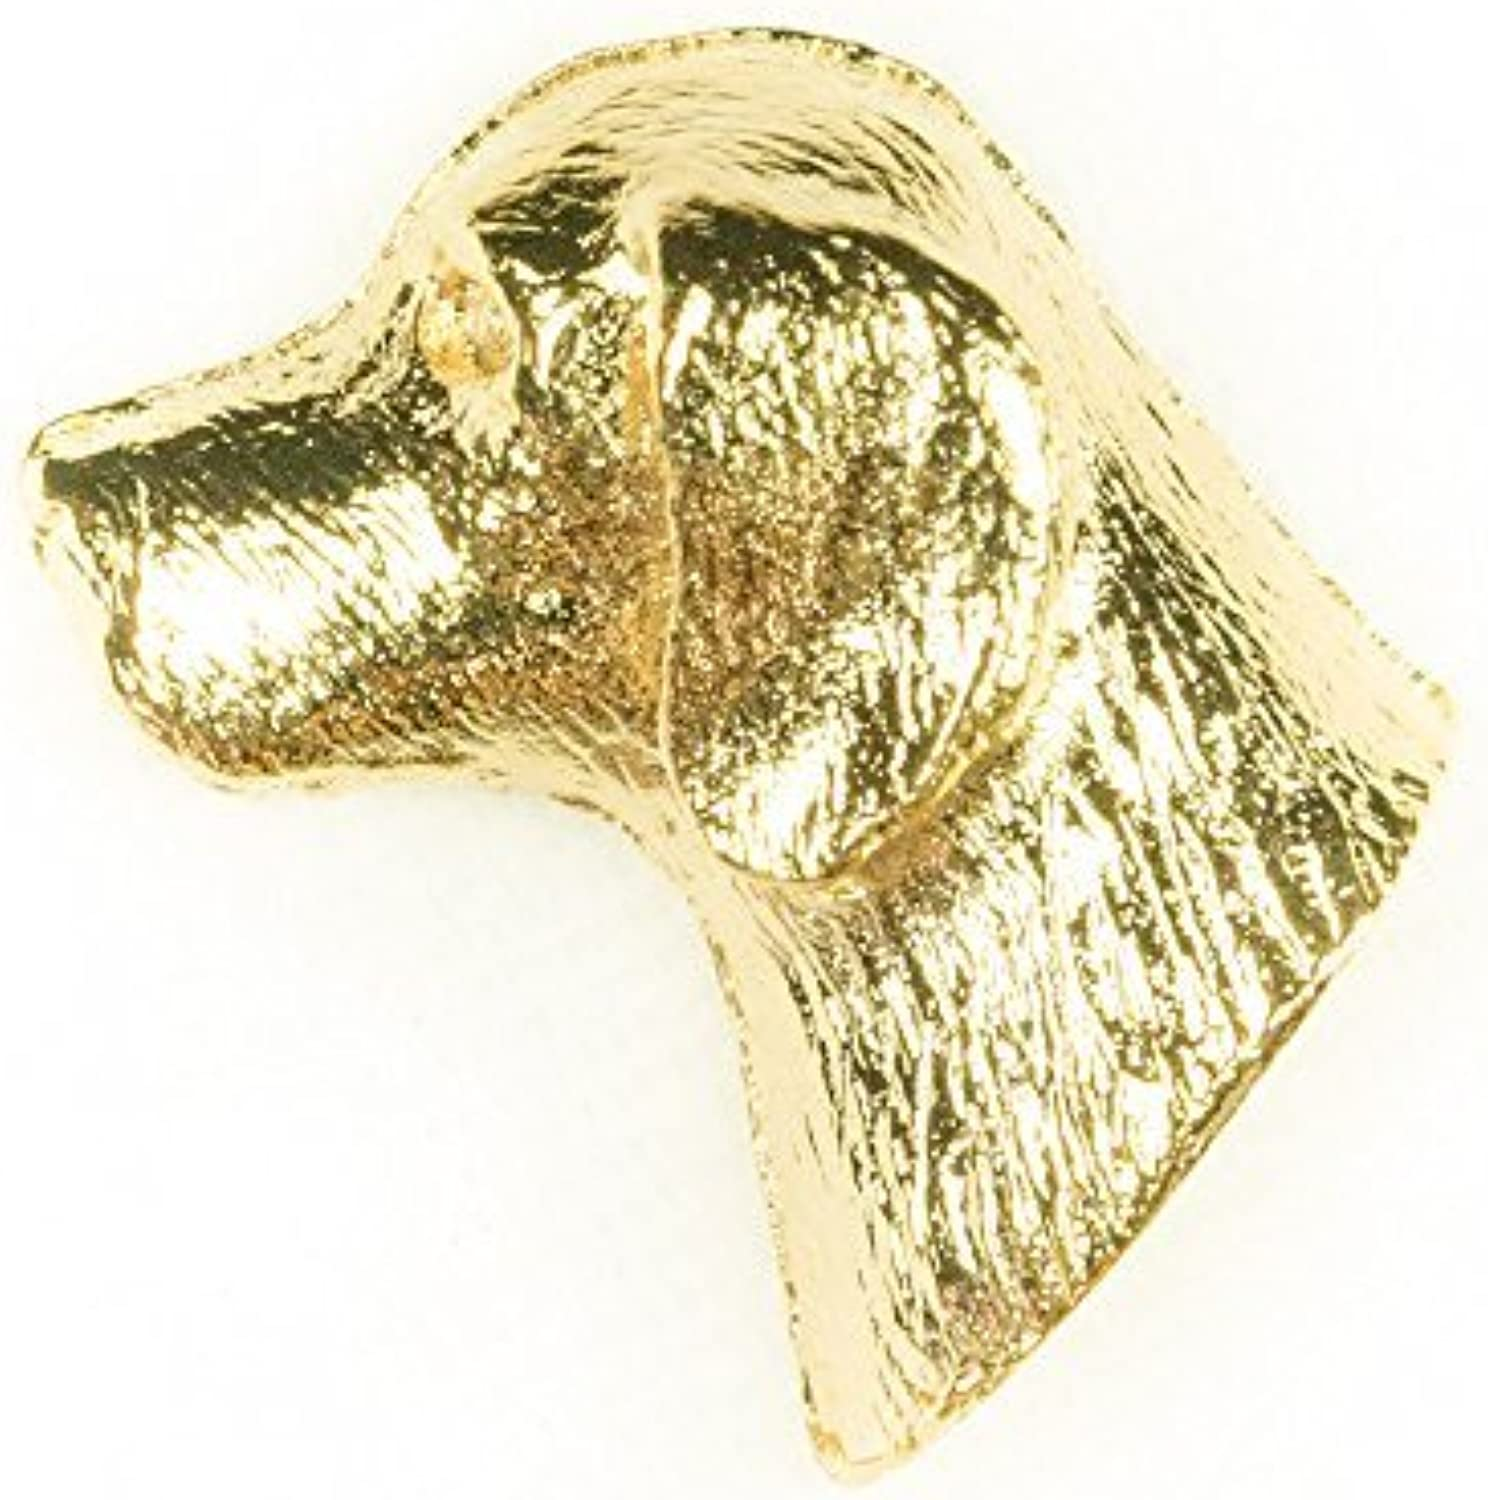 BEAGLE Made in U.K Artistic Style Dog Clutch Lapel Pin Collection 22ct Gold Plated by DOG ARTS JP